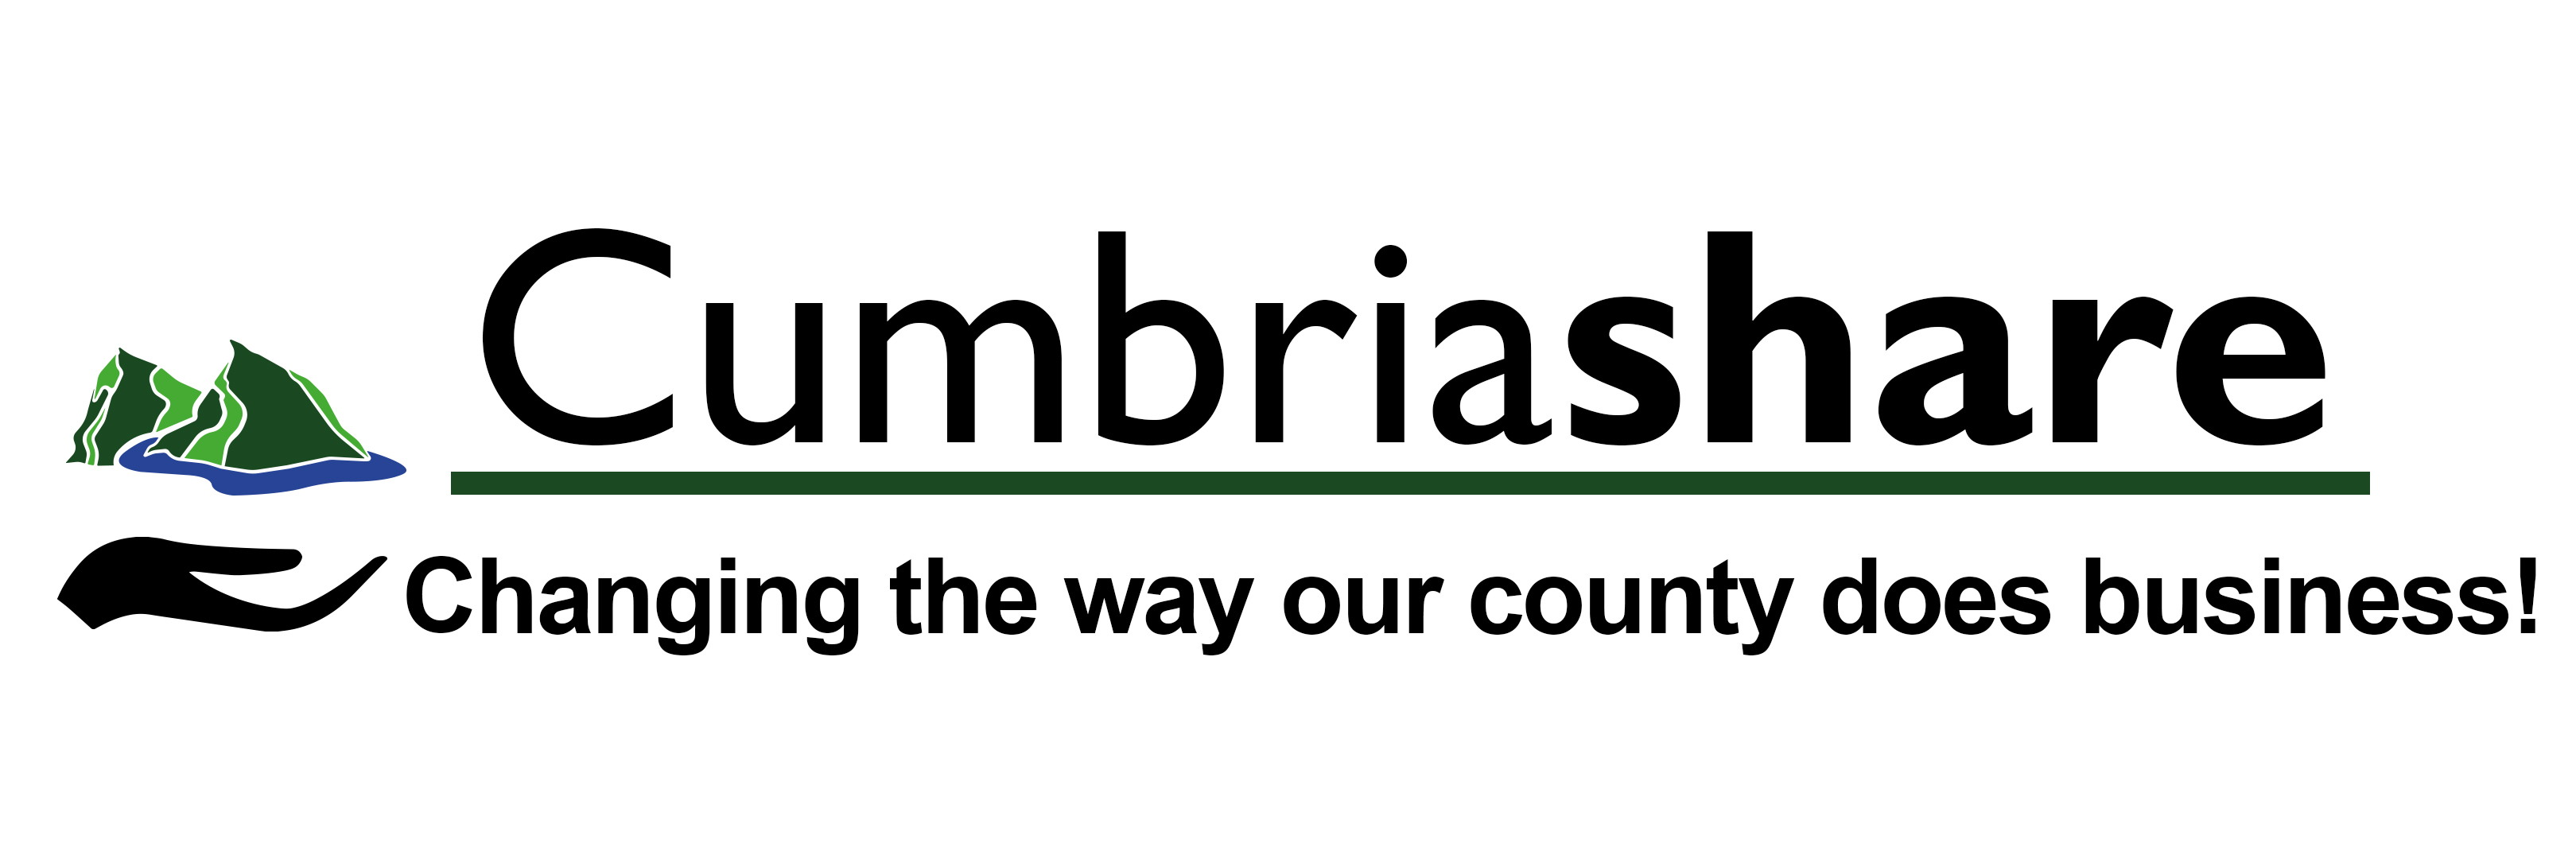 Lancashire Businesses go forth to Cumbria!